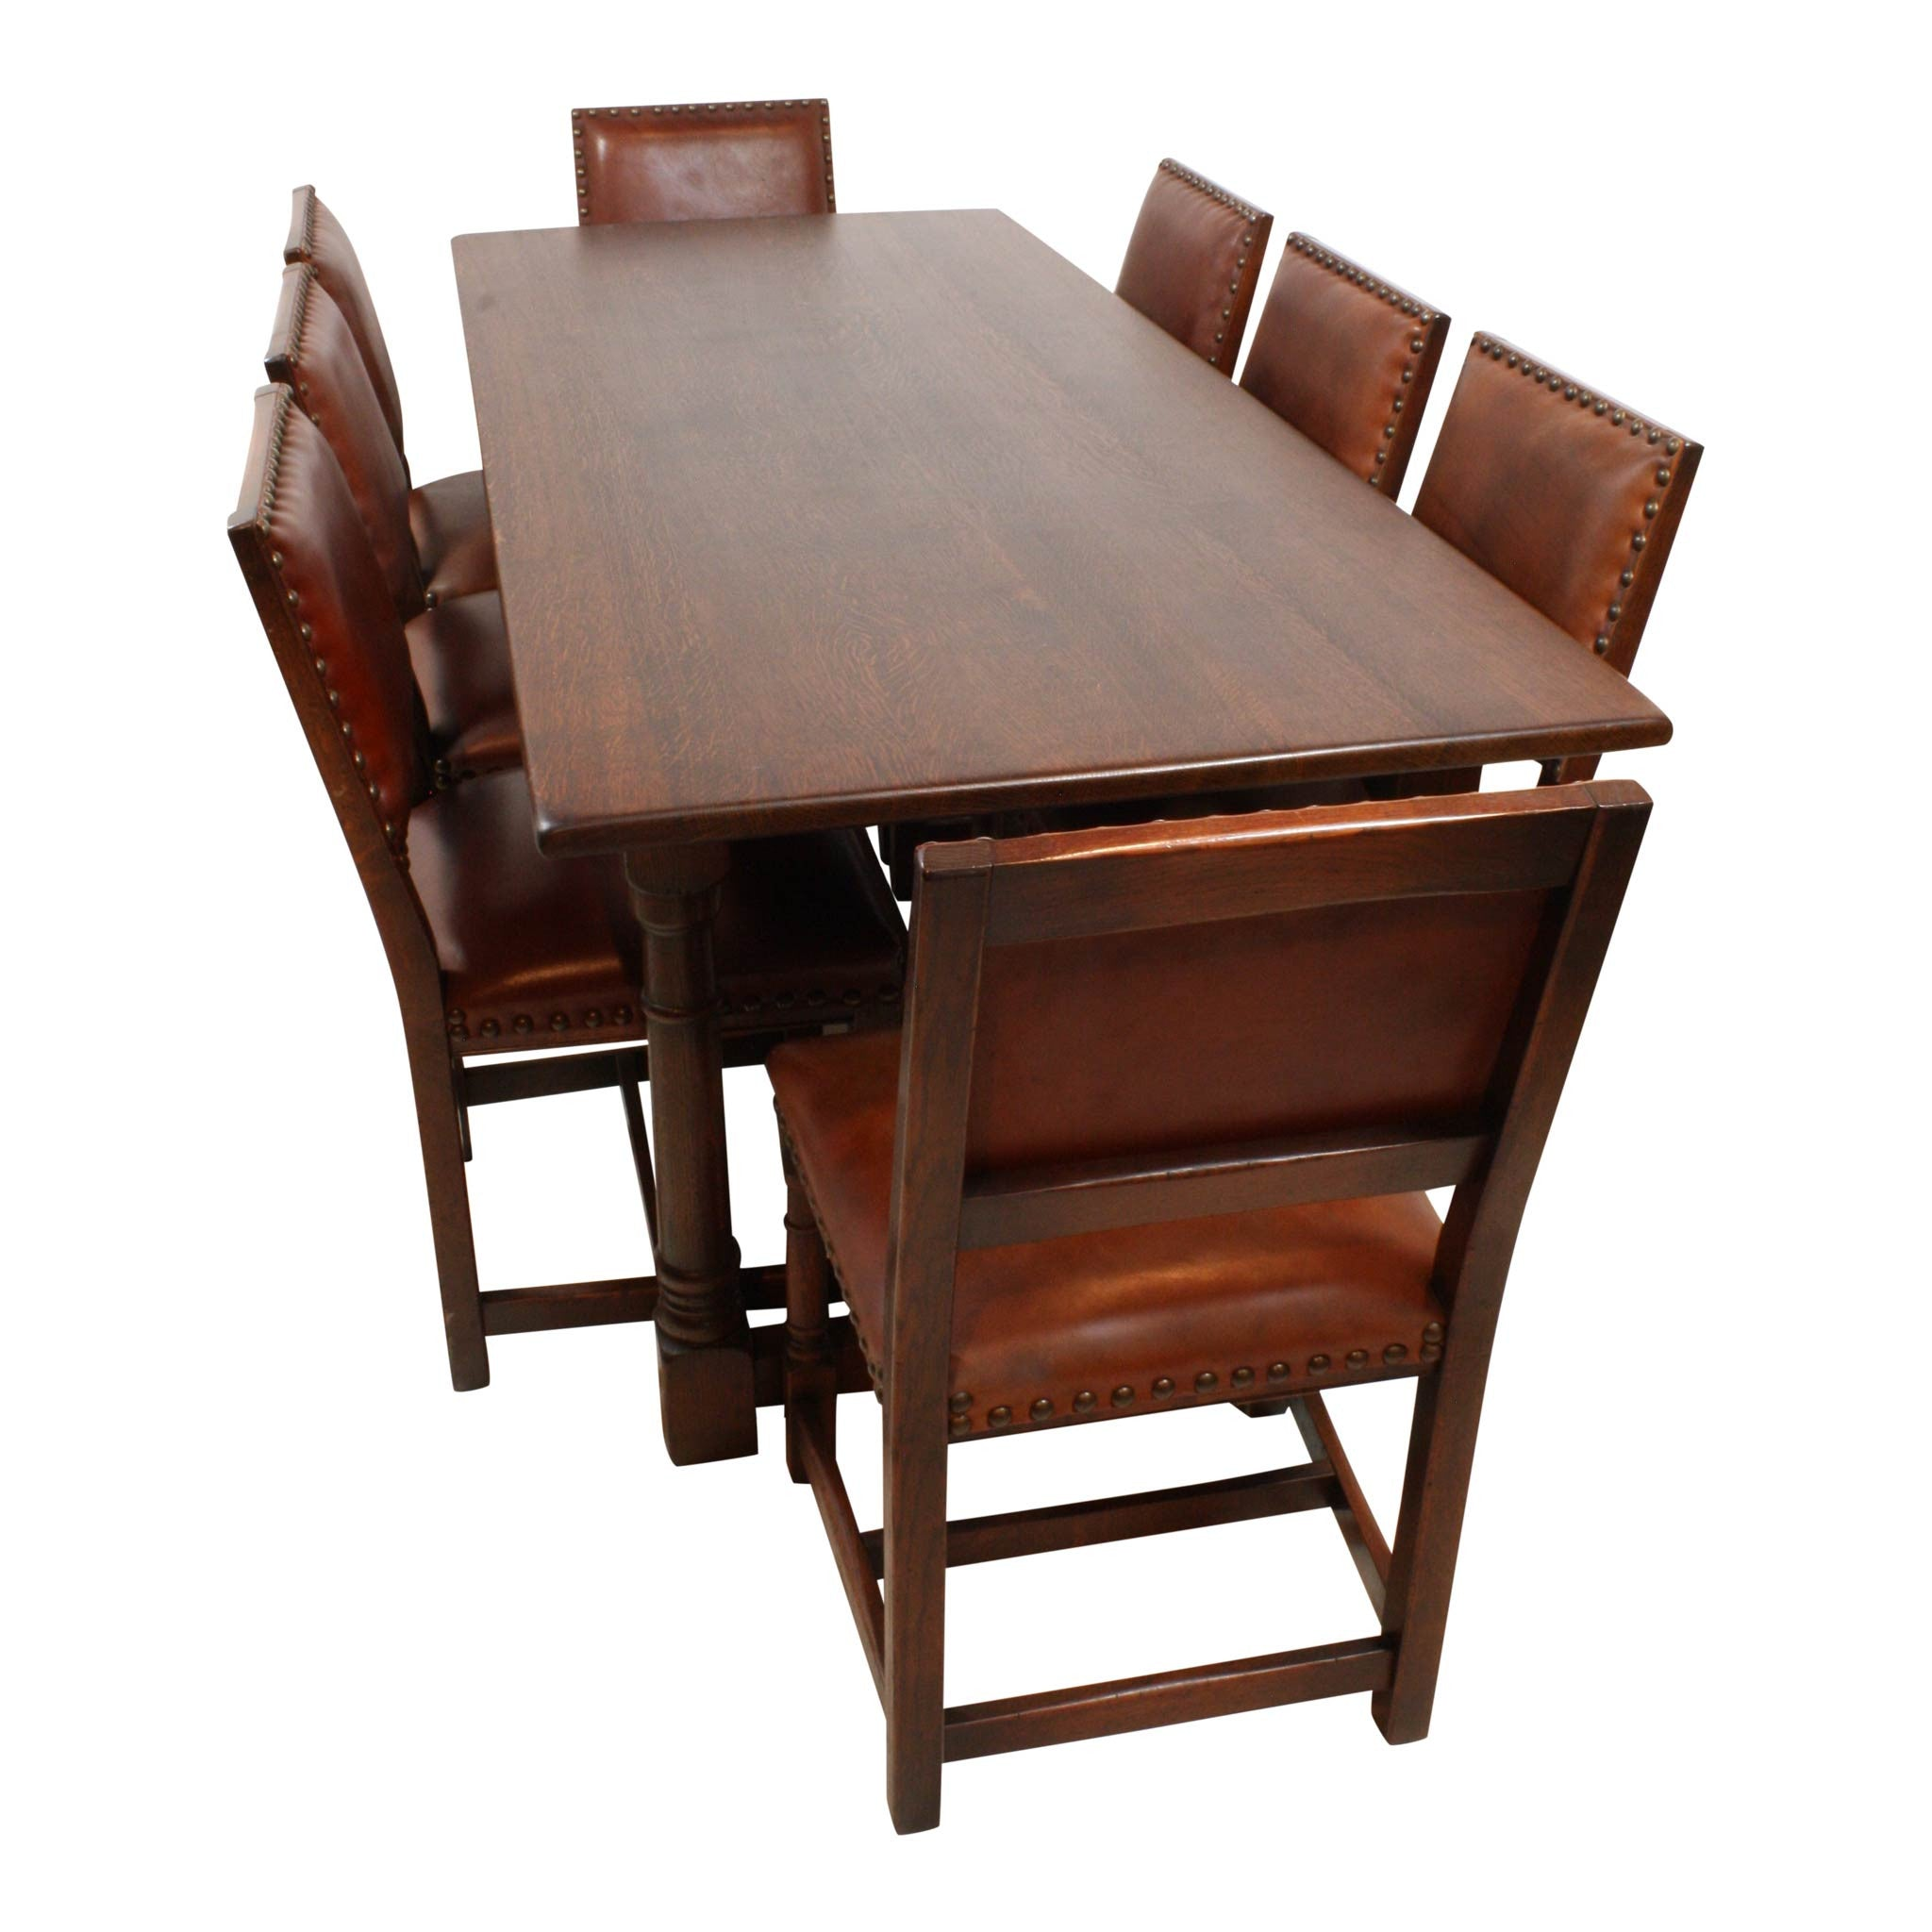 Remarkable Large Oak Dining Room Table W 8 Chairs Machost Co Dining Chair Design Ideas Machostcouk